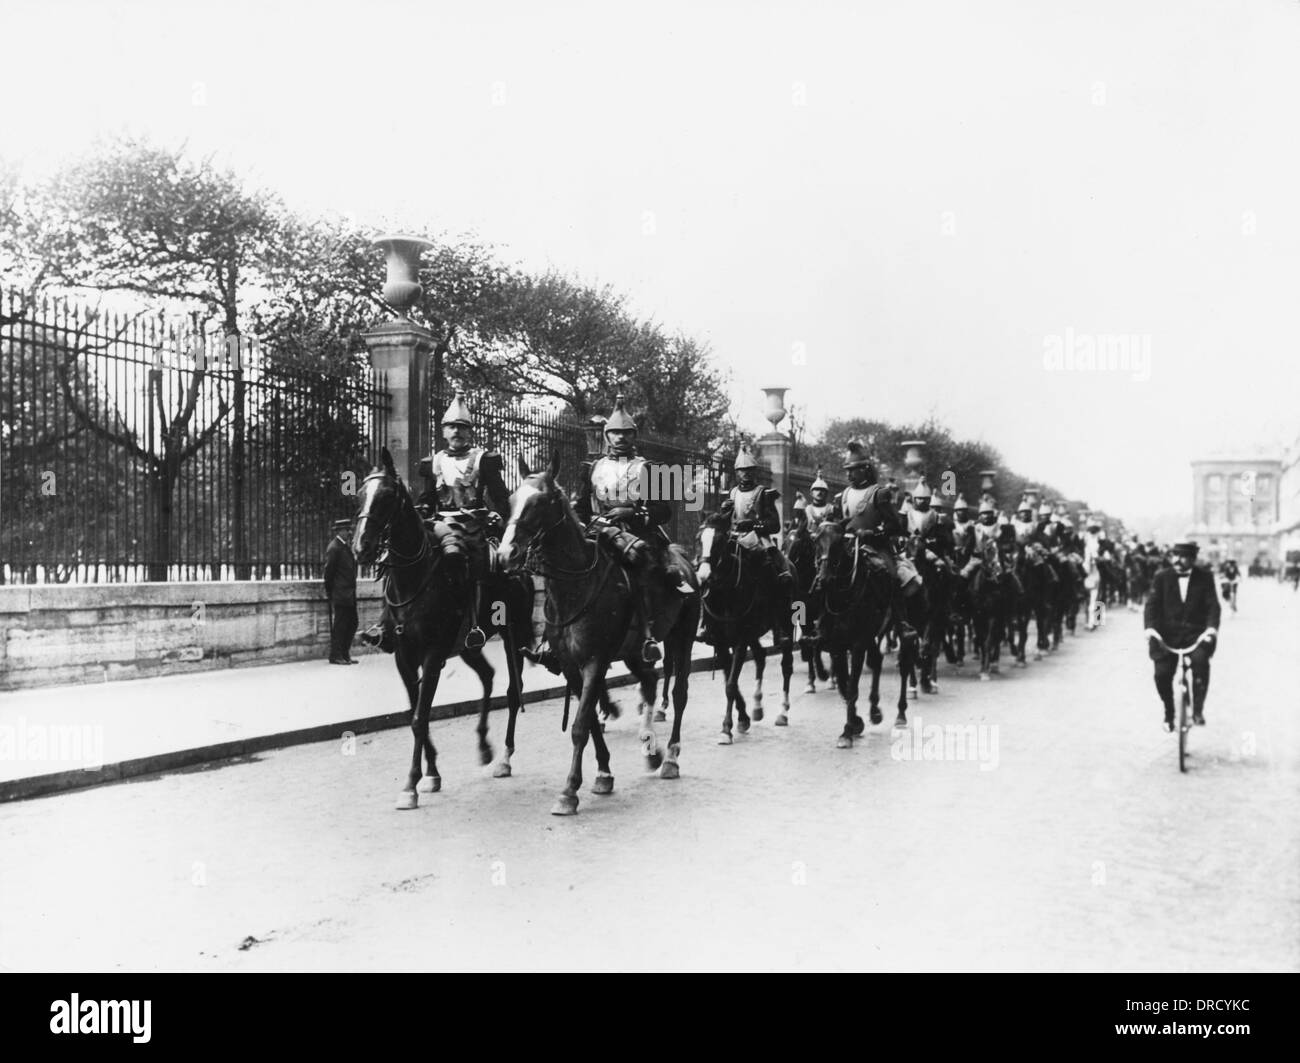 French cavalry WWI - Stock Image